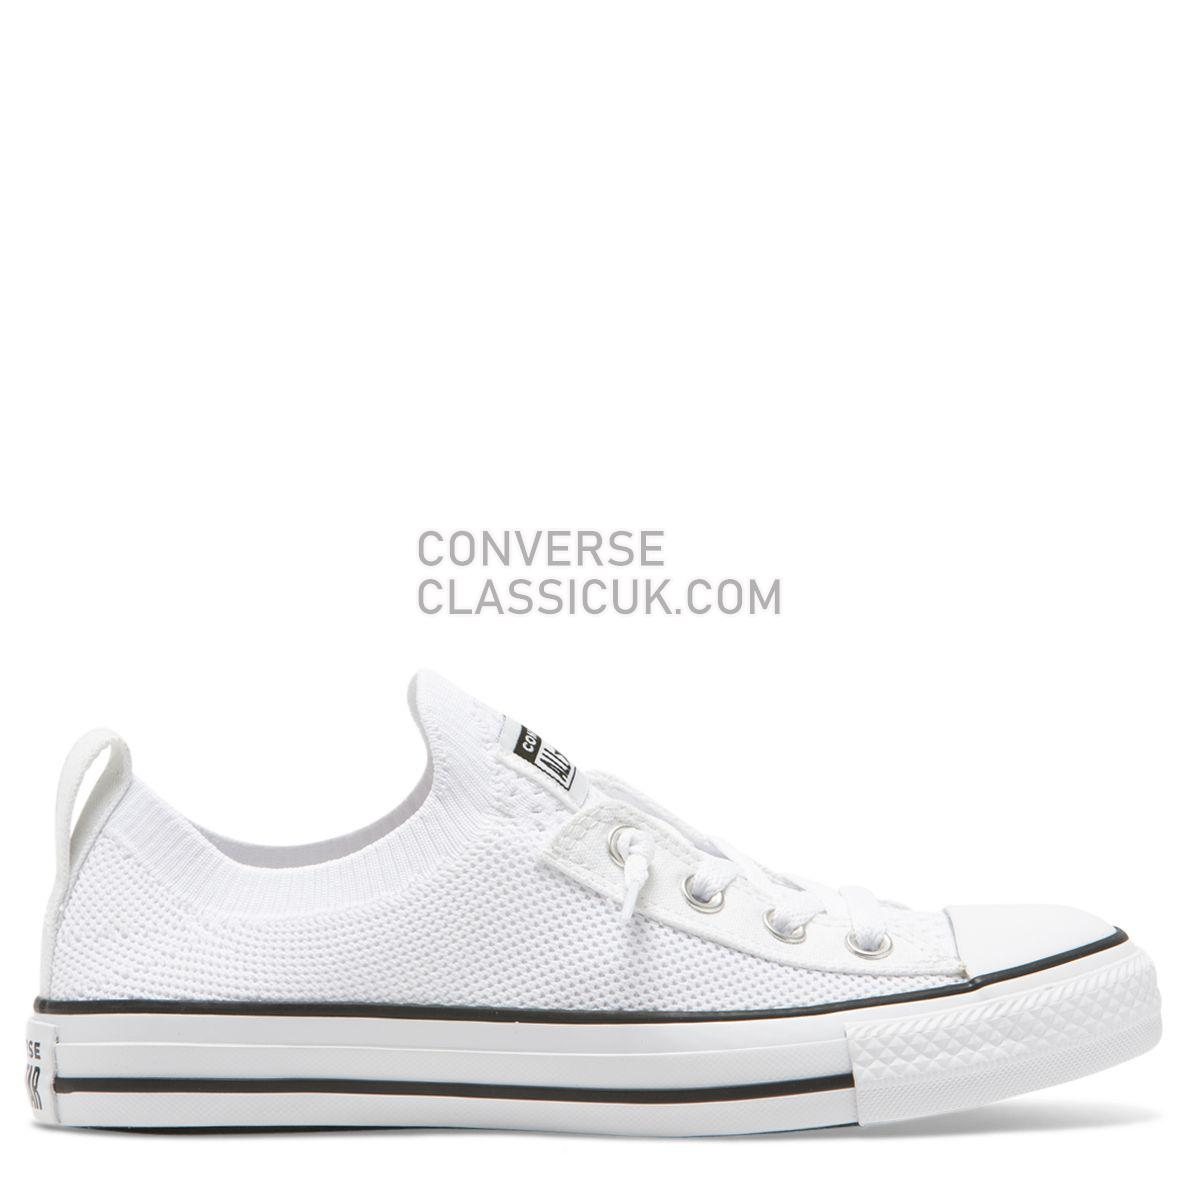 Converse Chuck Taylor All Star Shoreline Knit Slip Low Top Wolf White Womens 565490 White/Black/White Shoes